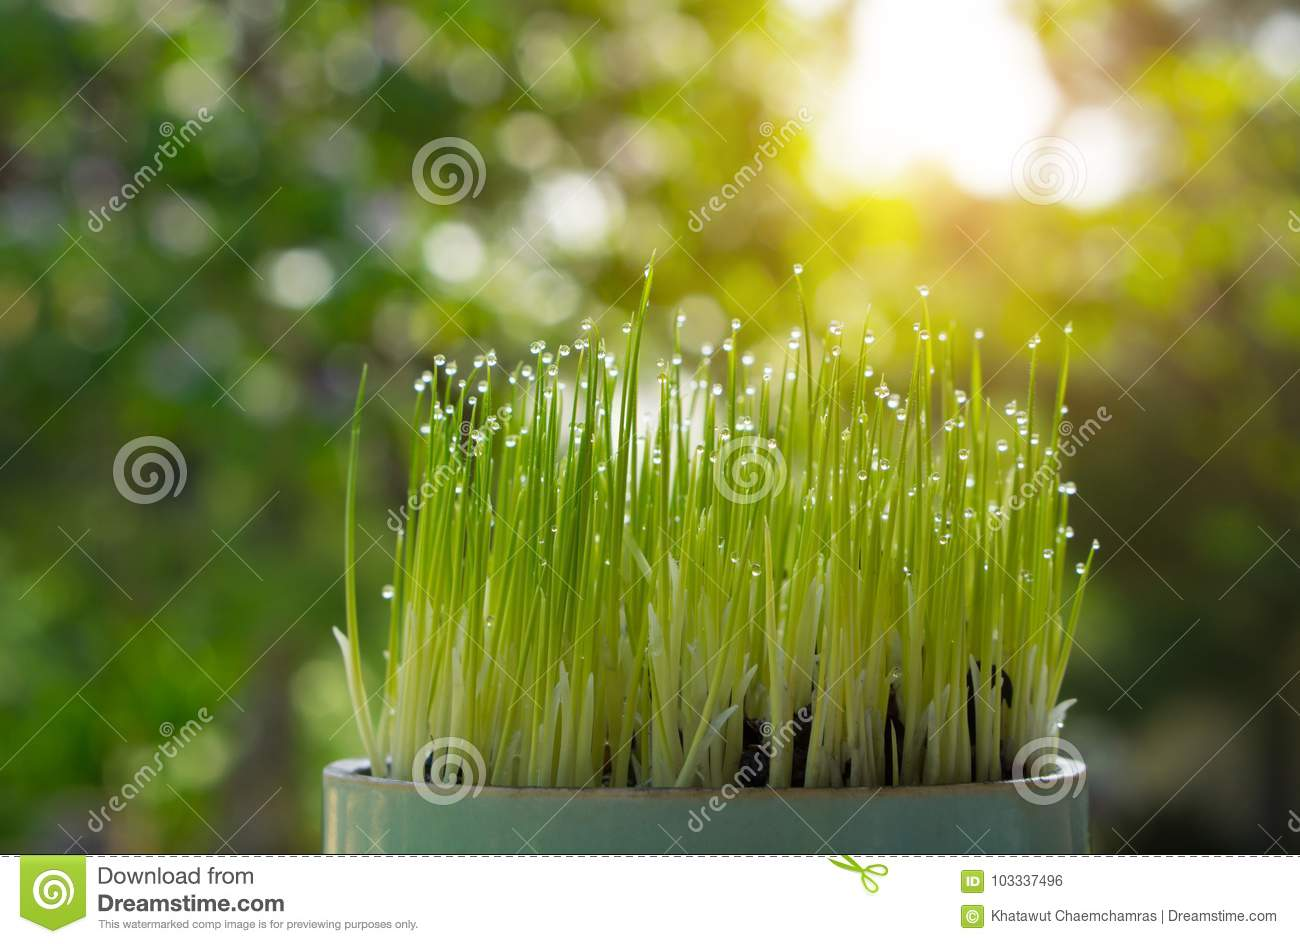 Rice sprout growing from seed growing. Green concept environment